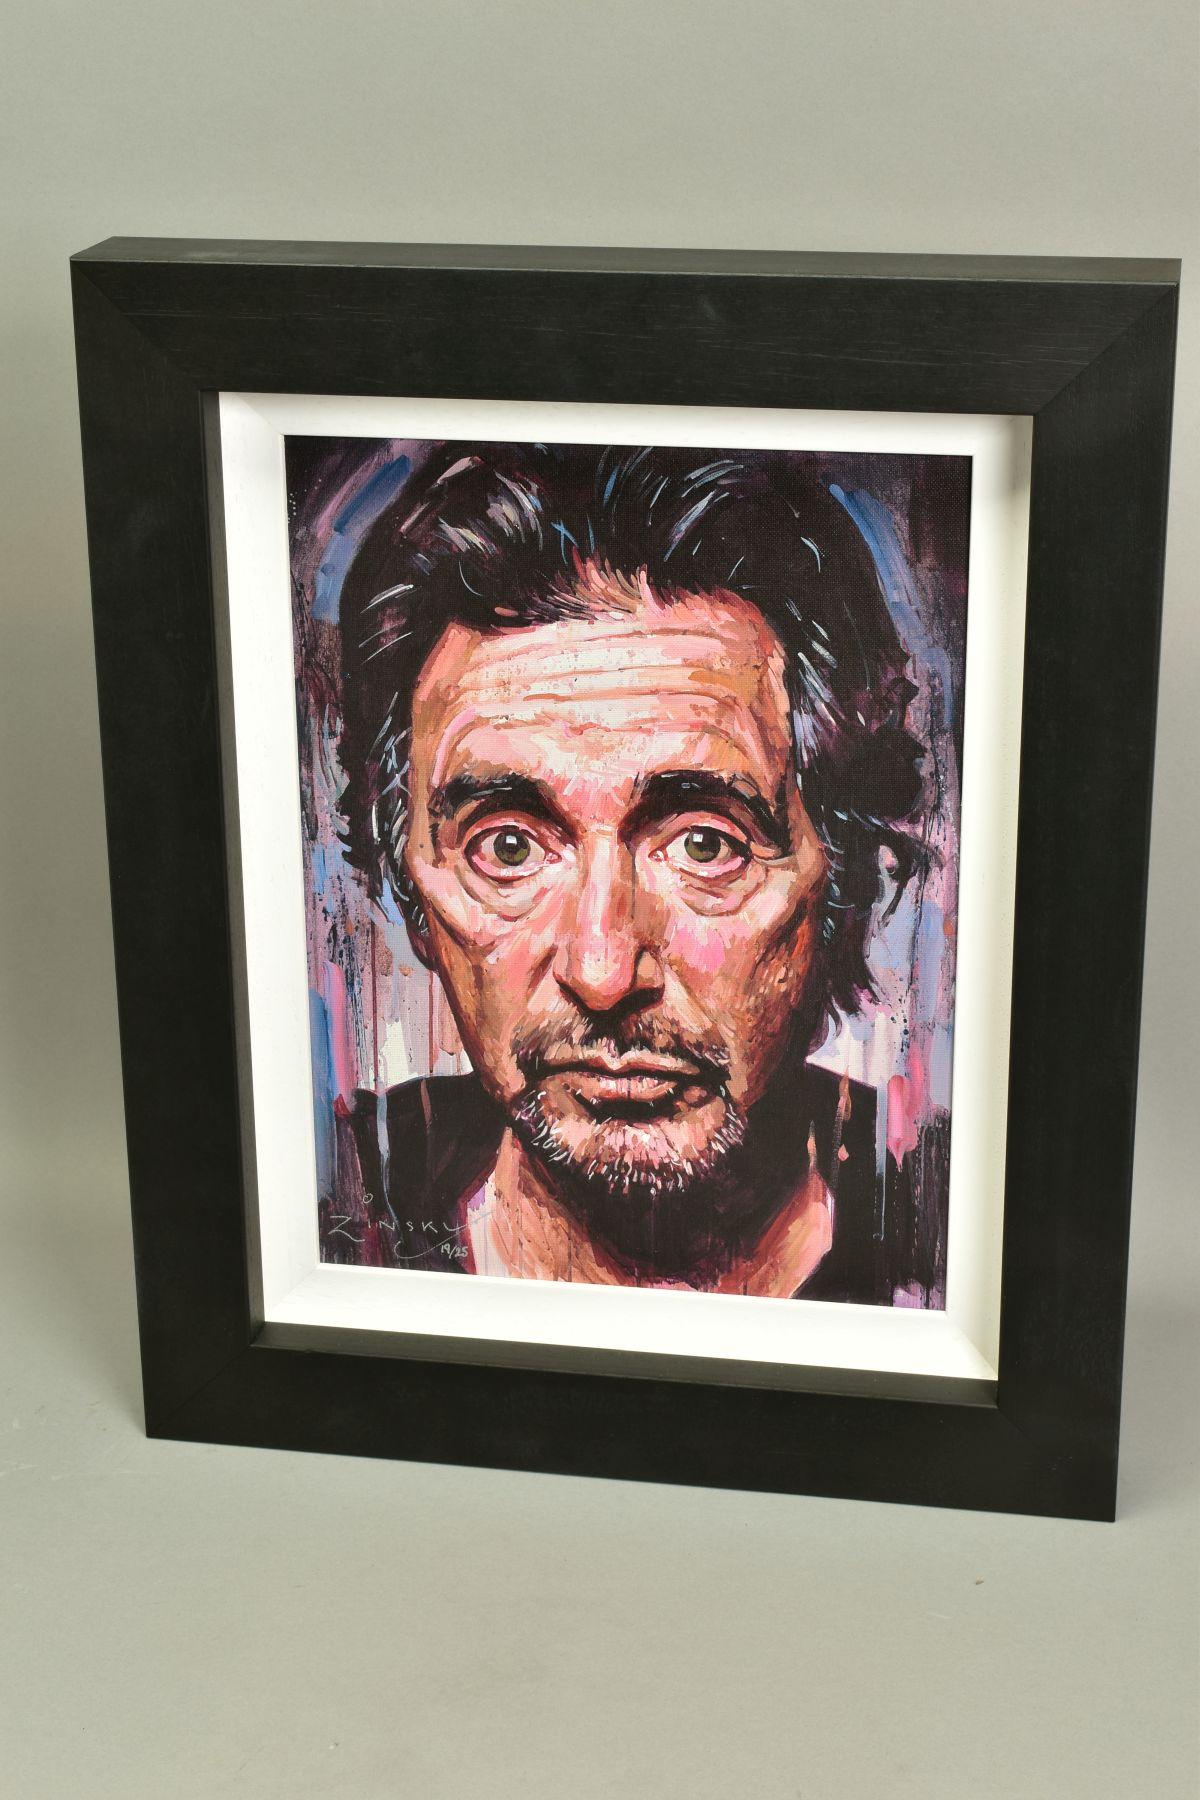 ZINSKY (BRITISH CONTEMPORARY), 'AL Pacino II', a portrait of the film star, a Limited Edition print, - Image 4 of 5